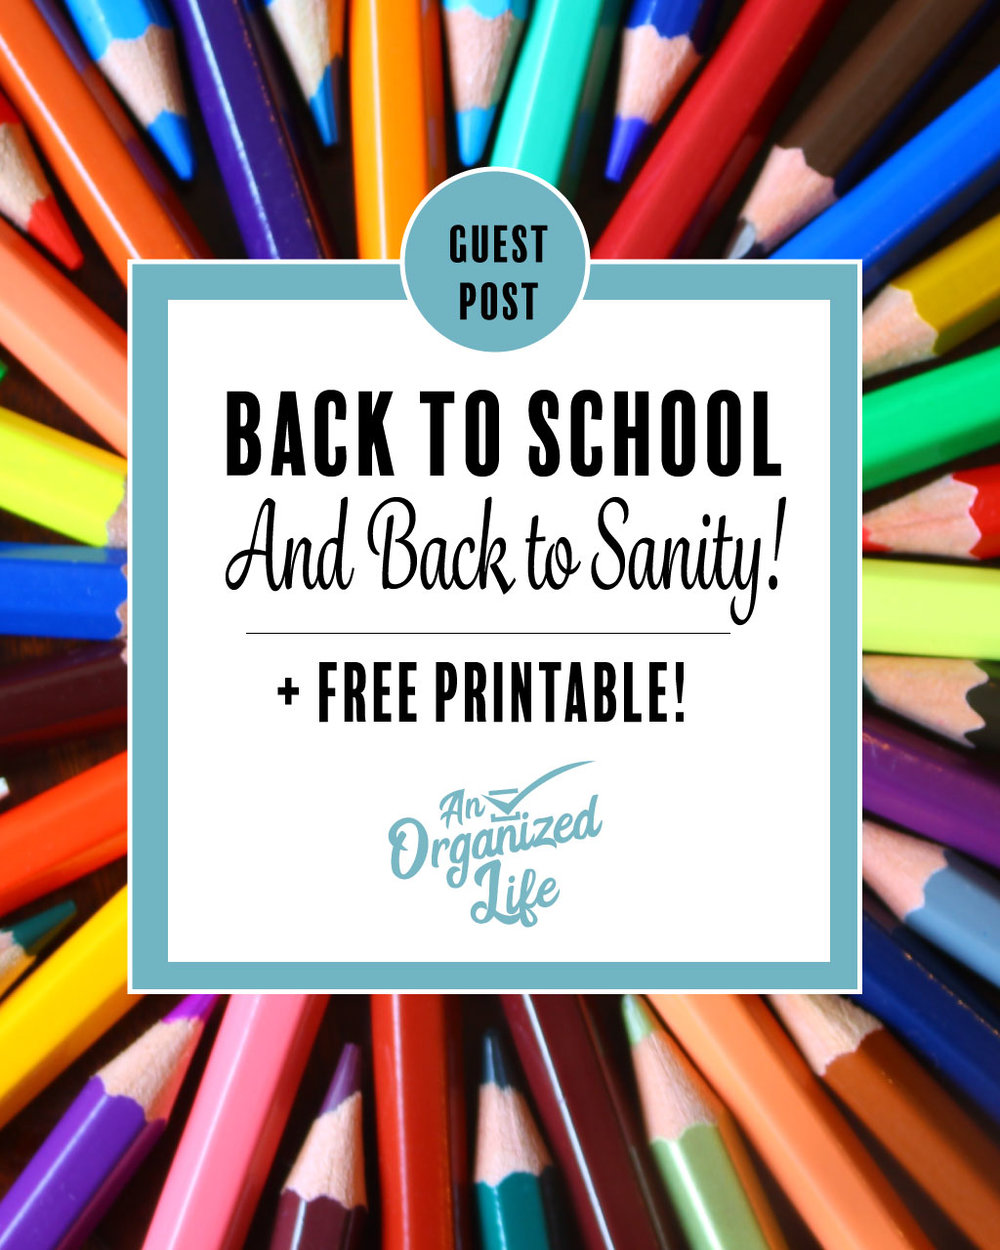 Back to school: An Organized Life Guest Post!